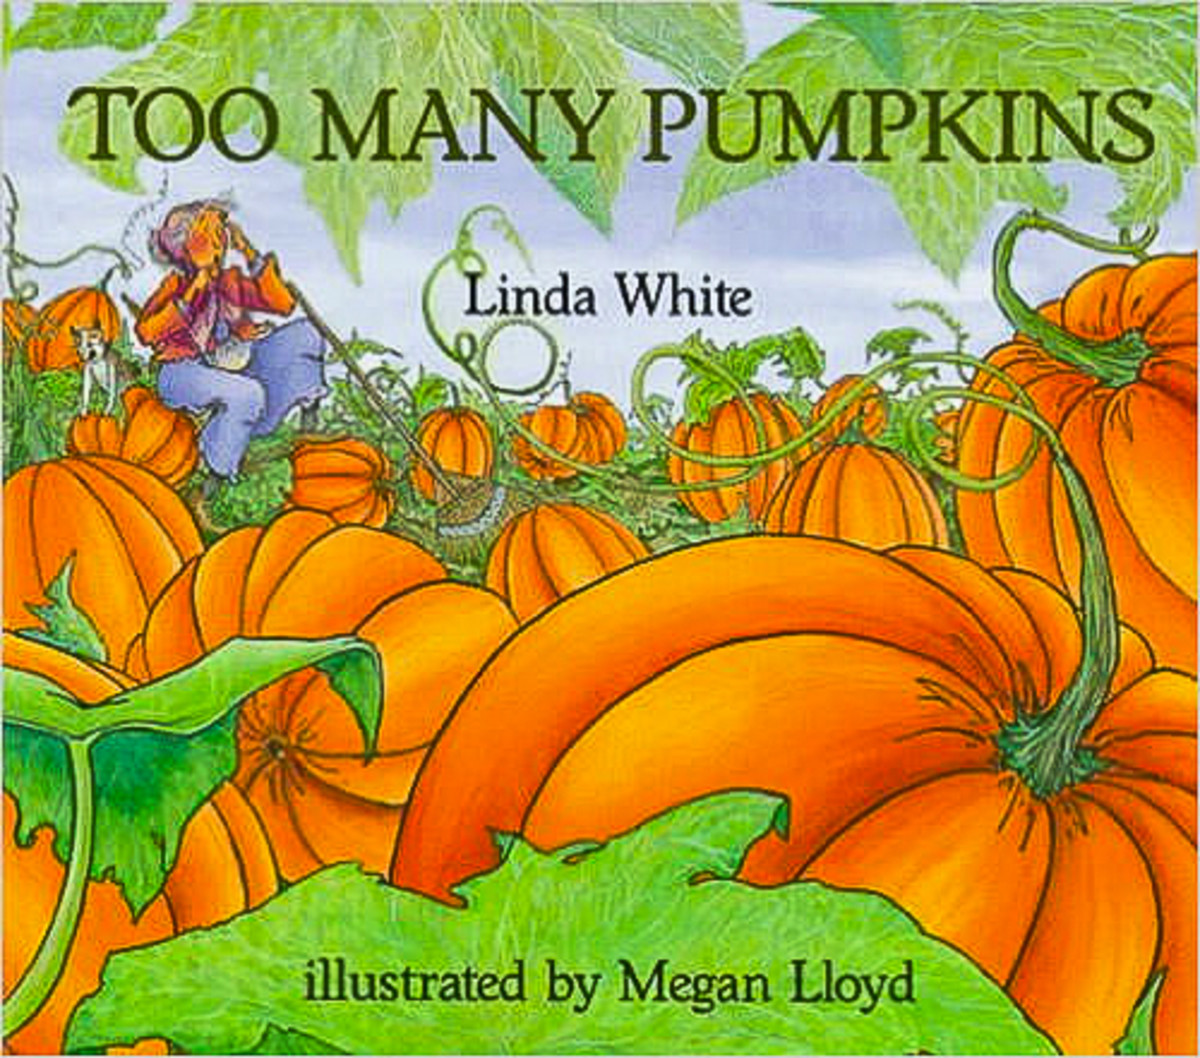 Too Many Pumpkins by Linda White and Megan Lloyd